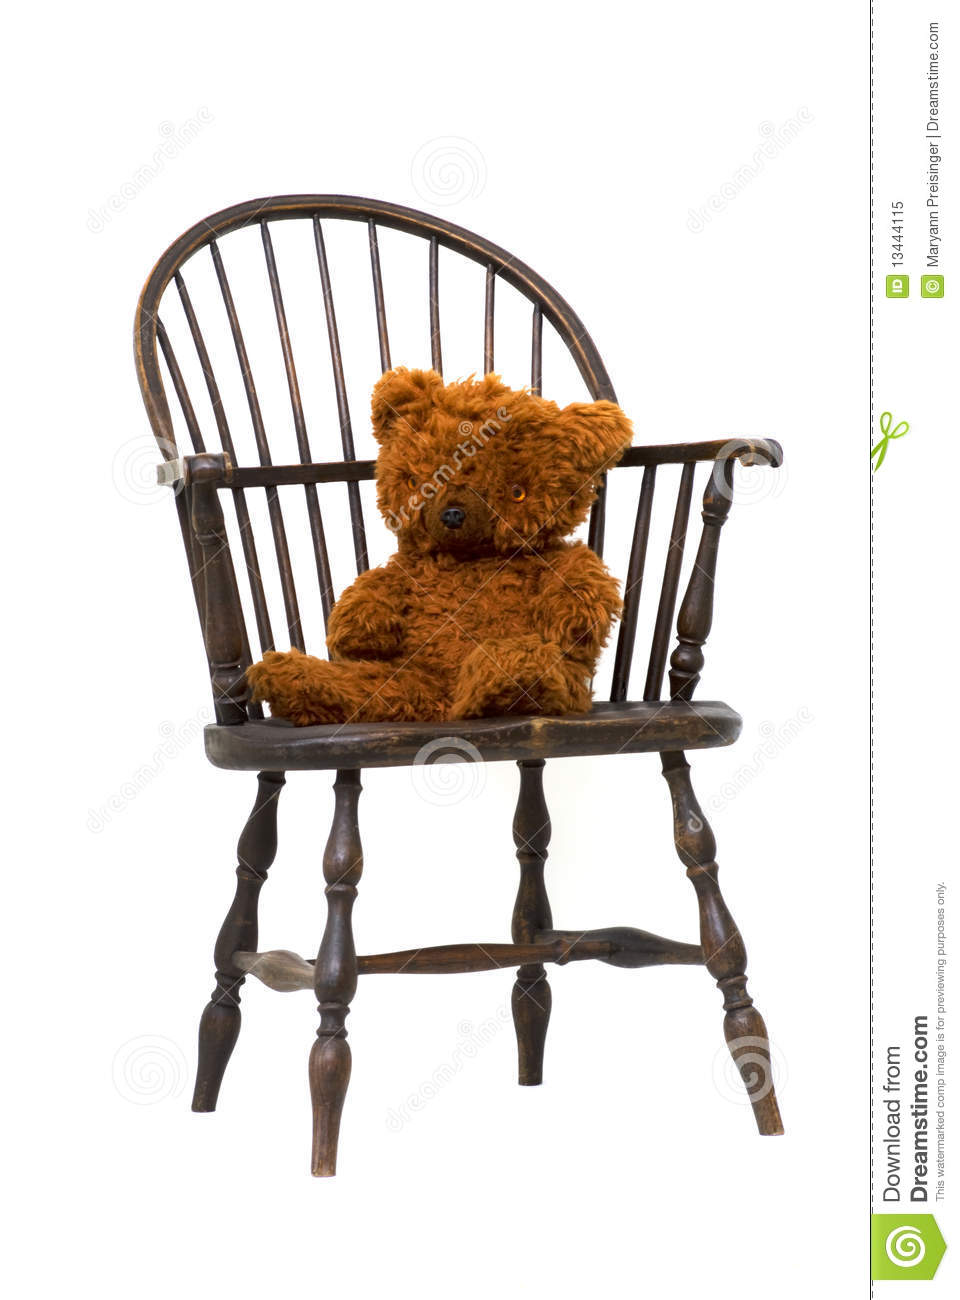 antique windsor chair with teddy bear isolated stock image image of bear antique 13444115. Black Bedroom Furniture Sets. Home Design Ideas